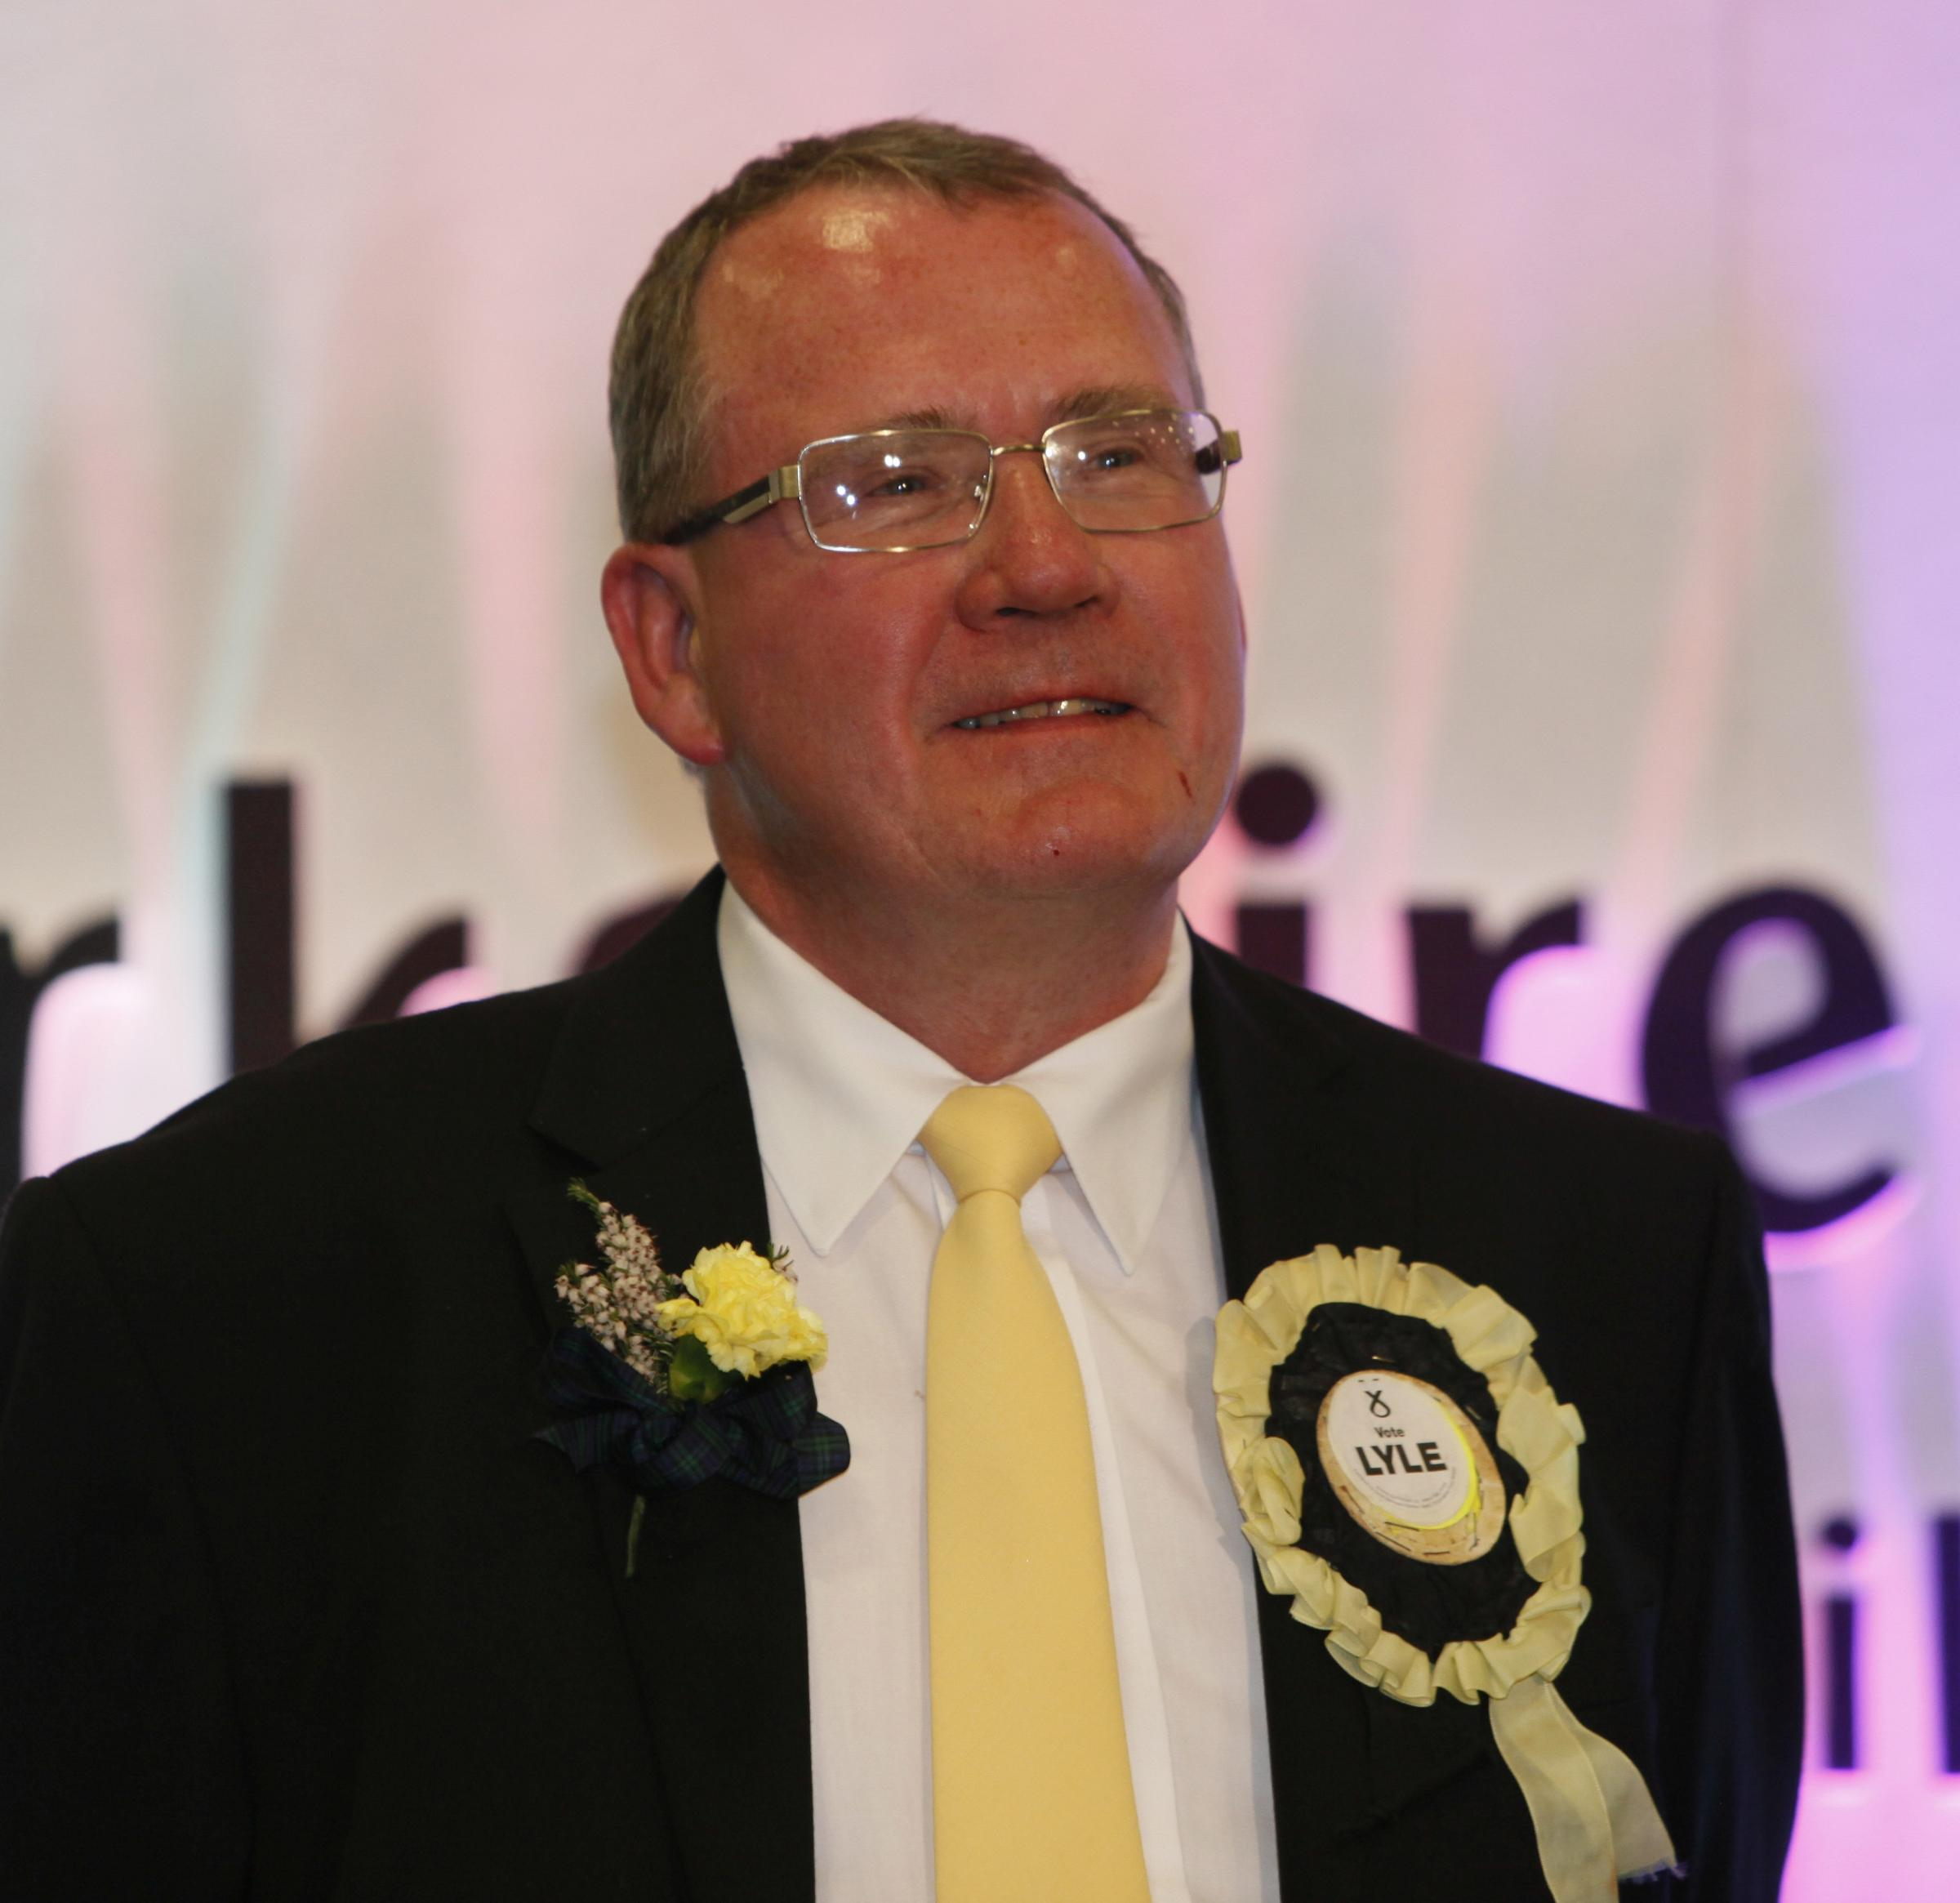 Richard Lyle at the 2011 Holyrood election